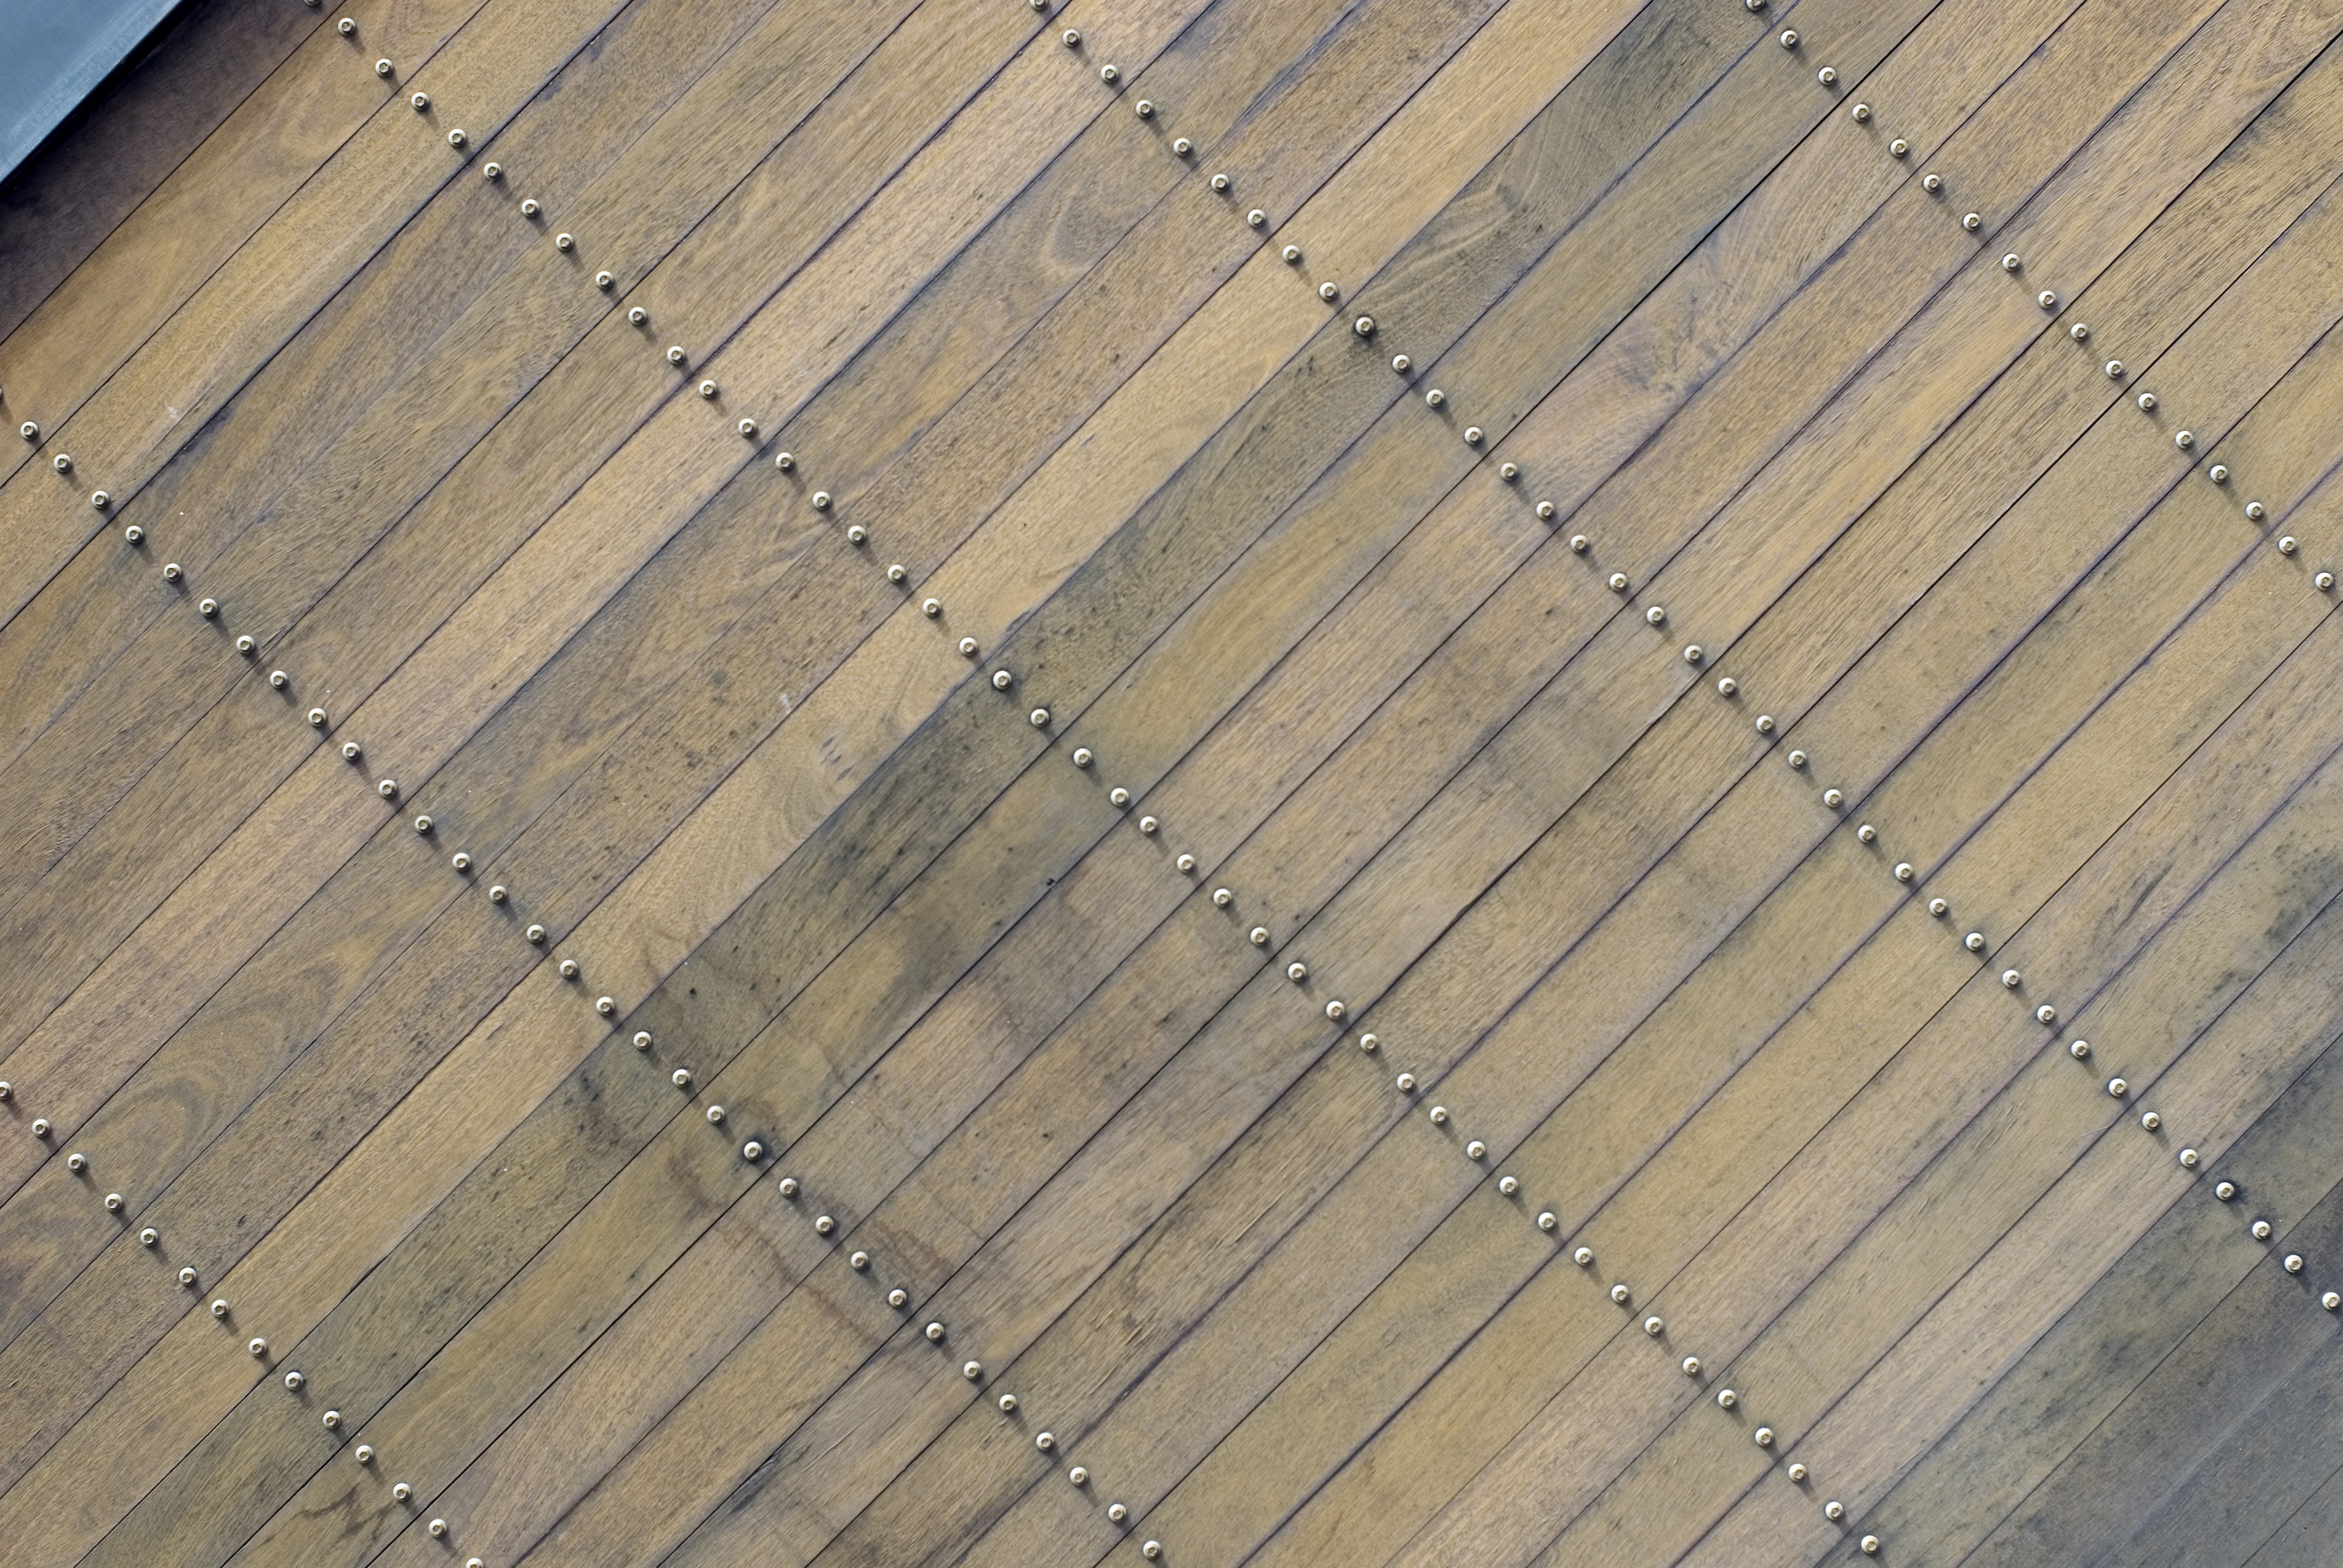 texture of a wooden surface with lines of screws